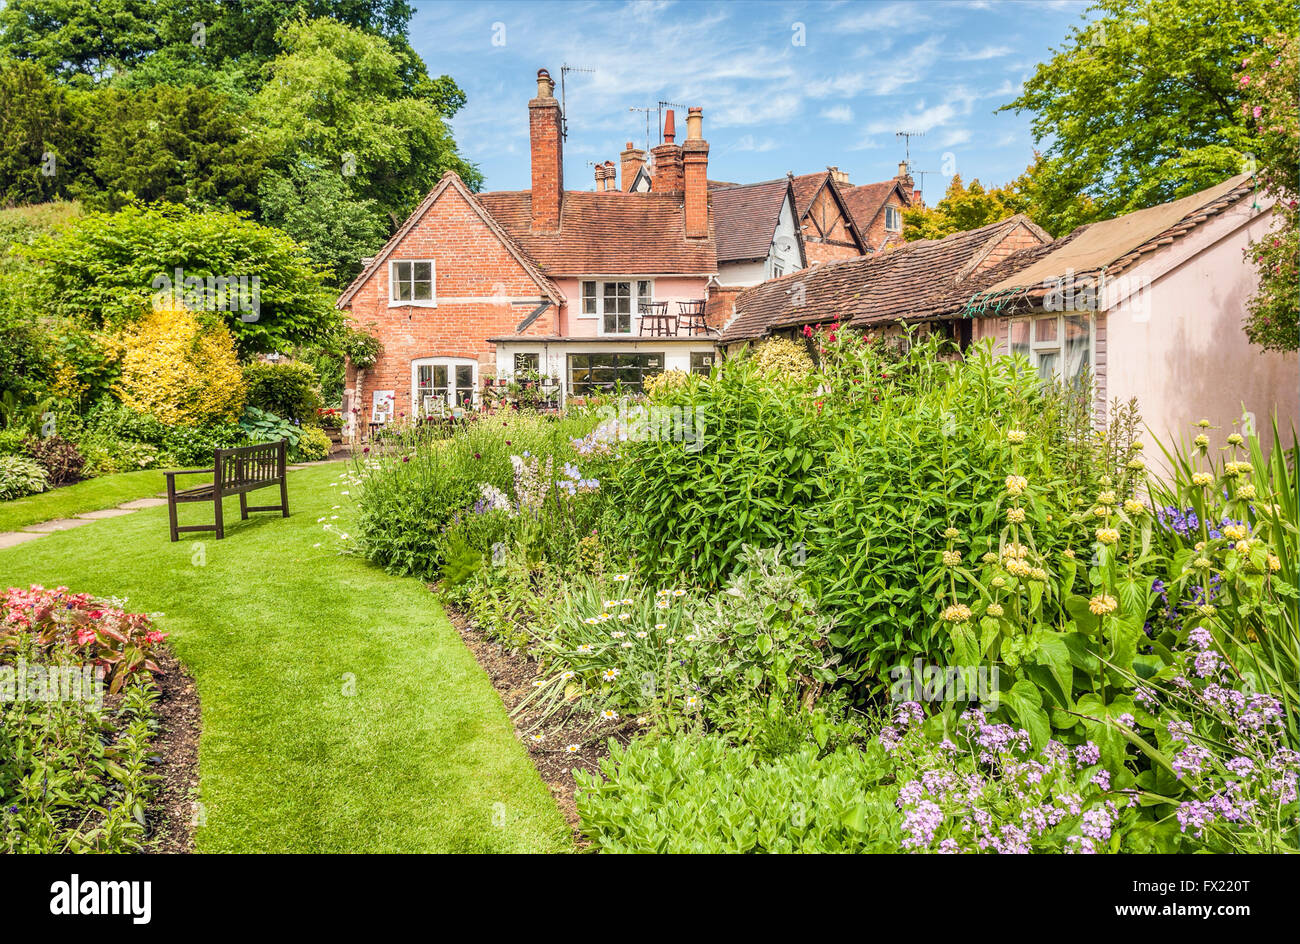 Mill Garden just below the Caesars Tower of Warwick Castle in Warwick a medieval county town of Warwickshire, England.| - Stock Image